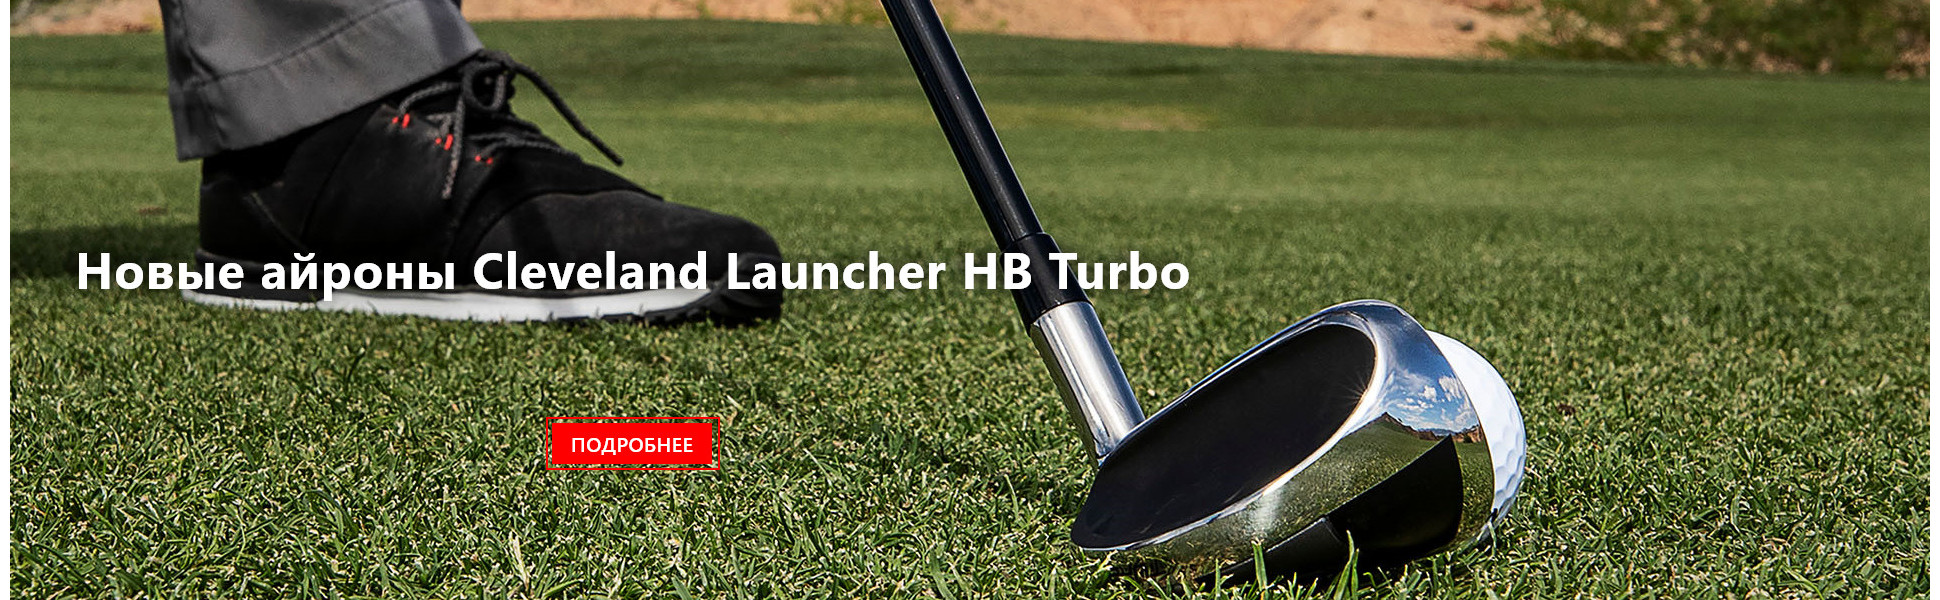 Новые айроны Cleveland Launcher HB Turbo